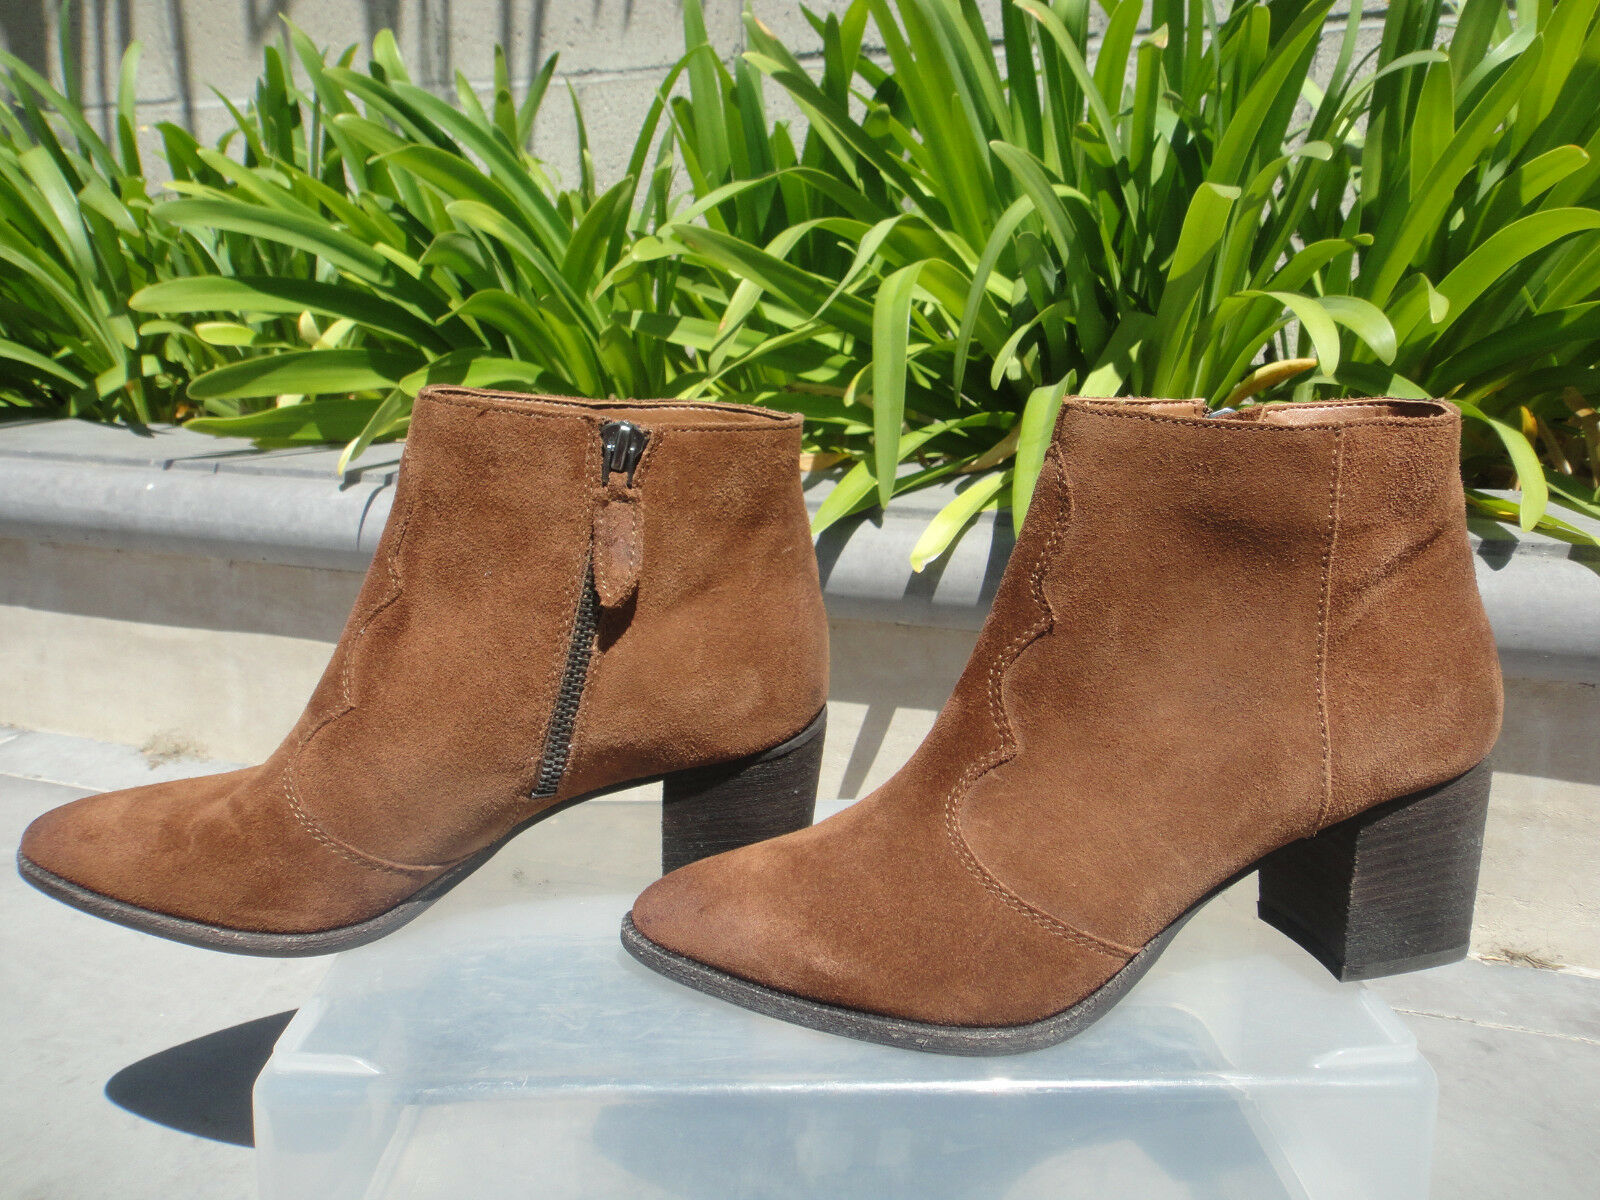 Dolce Vita, LENNON Bootie, Acorn Suede w/Pointed Toe & Topstitching MSRP 160 6M